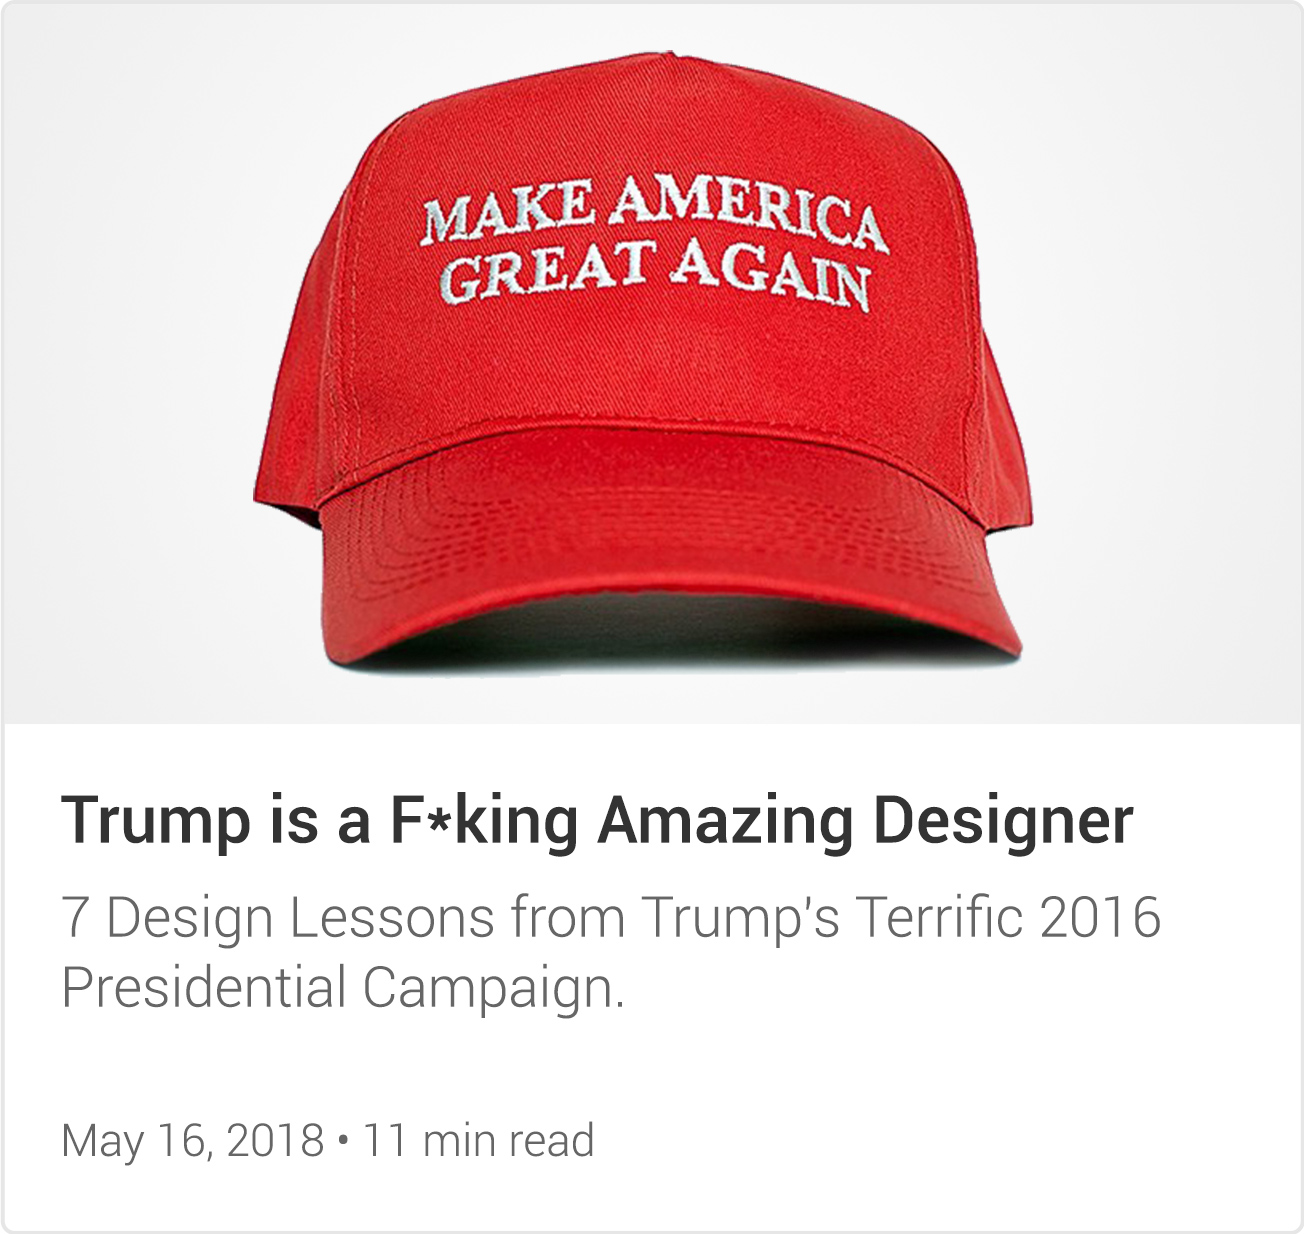 Trump is a F*king Amazing Designer